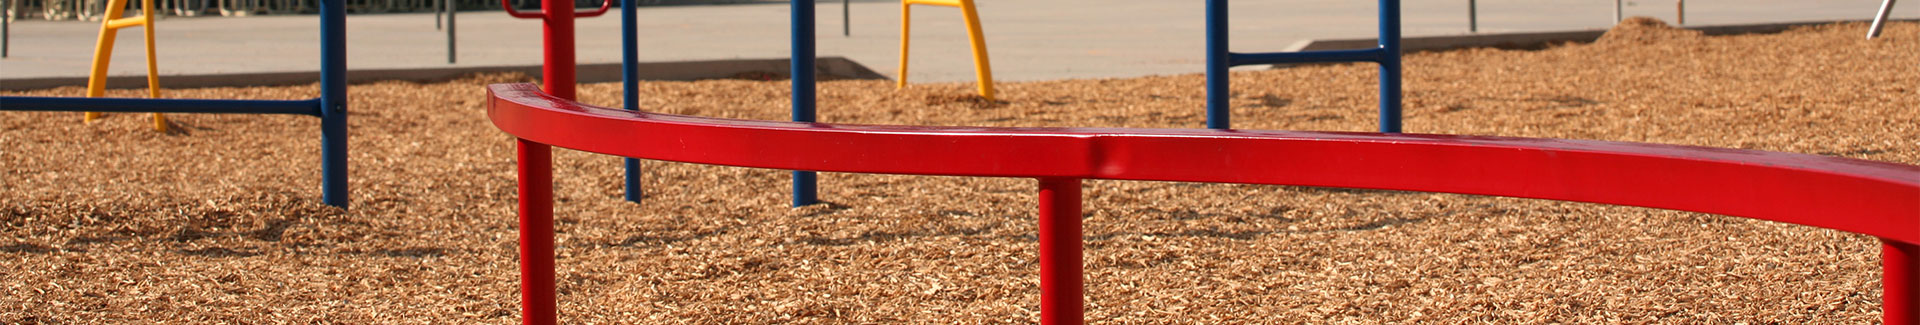 Engineered Wood Fiber / Playground Wood Chips